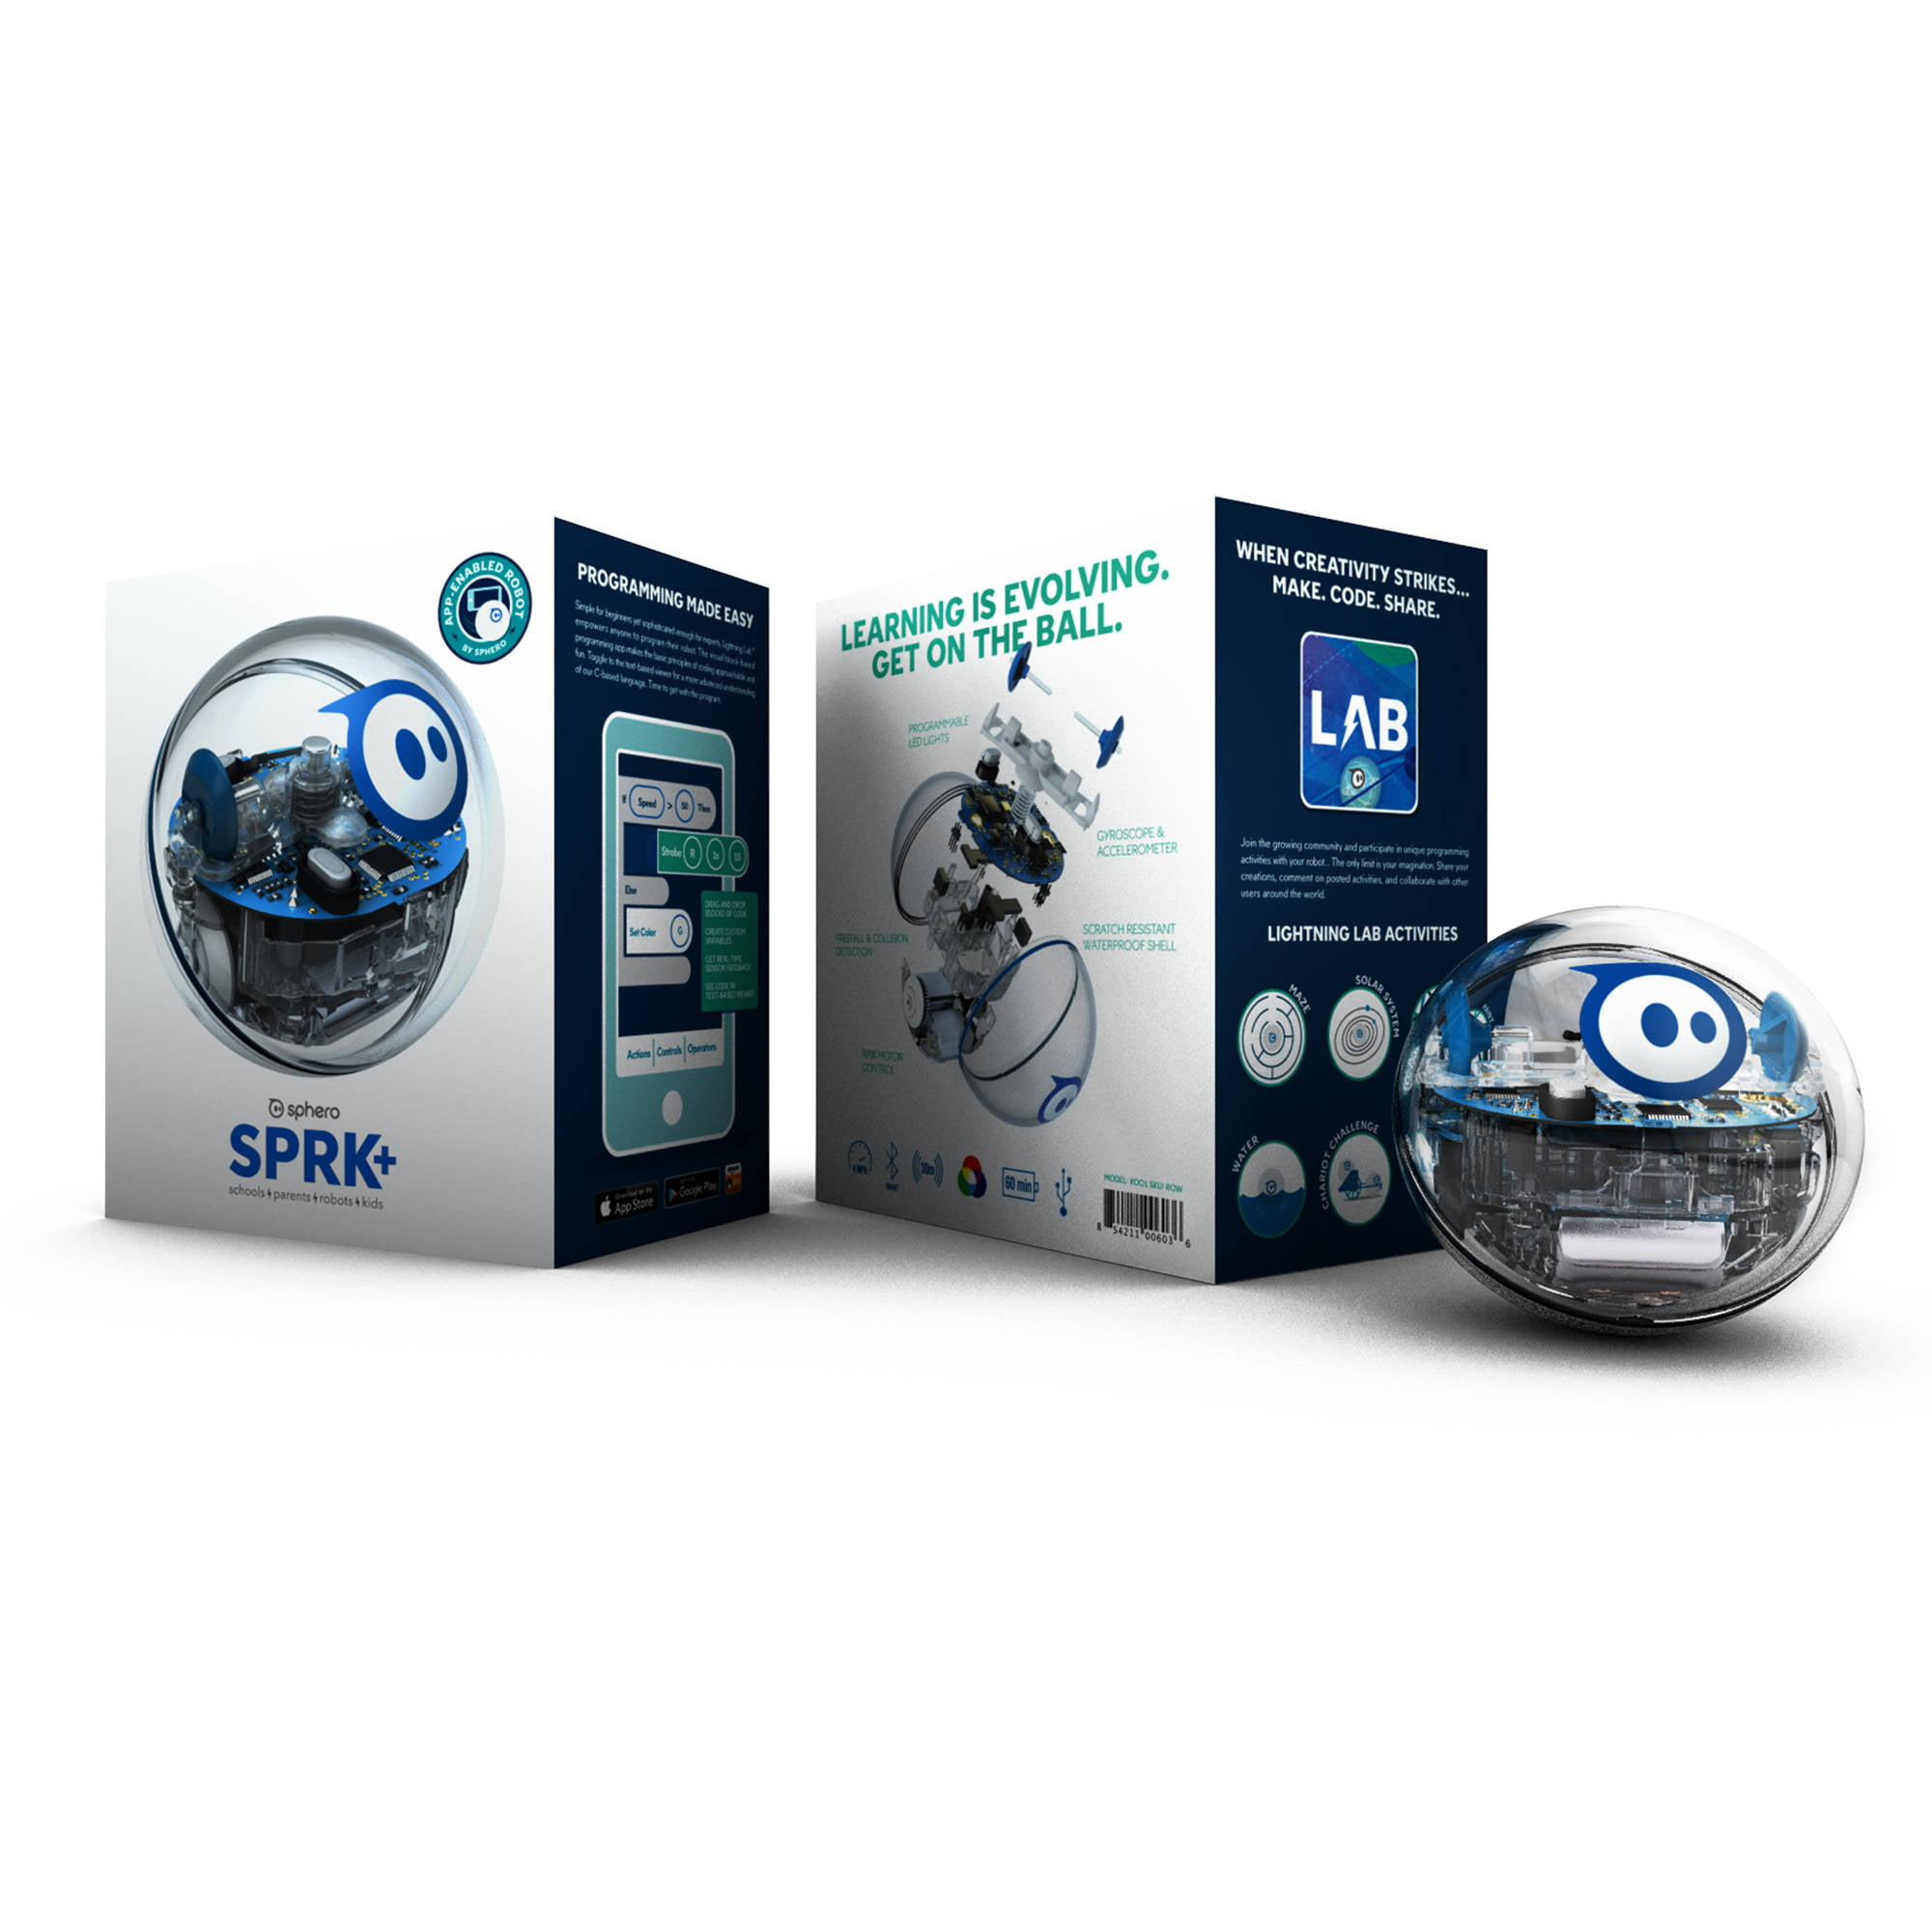 Sphero SPRK+ STEAM Educational Robot by SPHERO SPRK